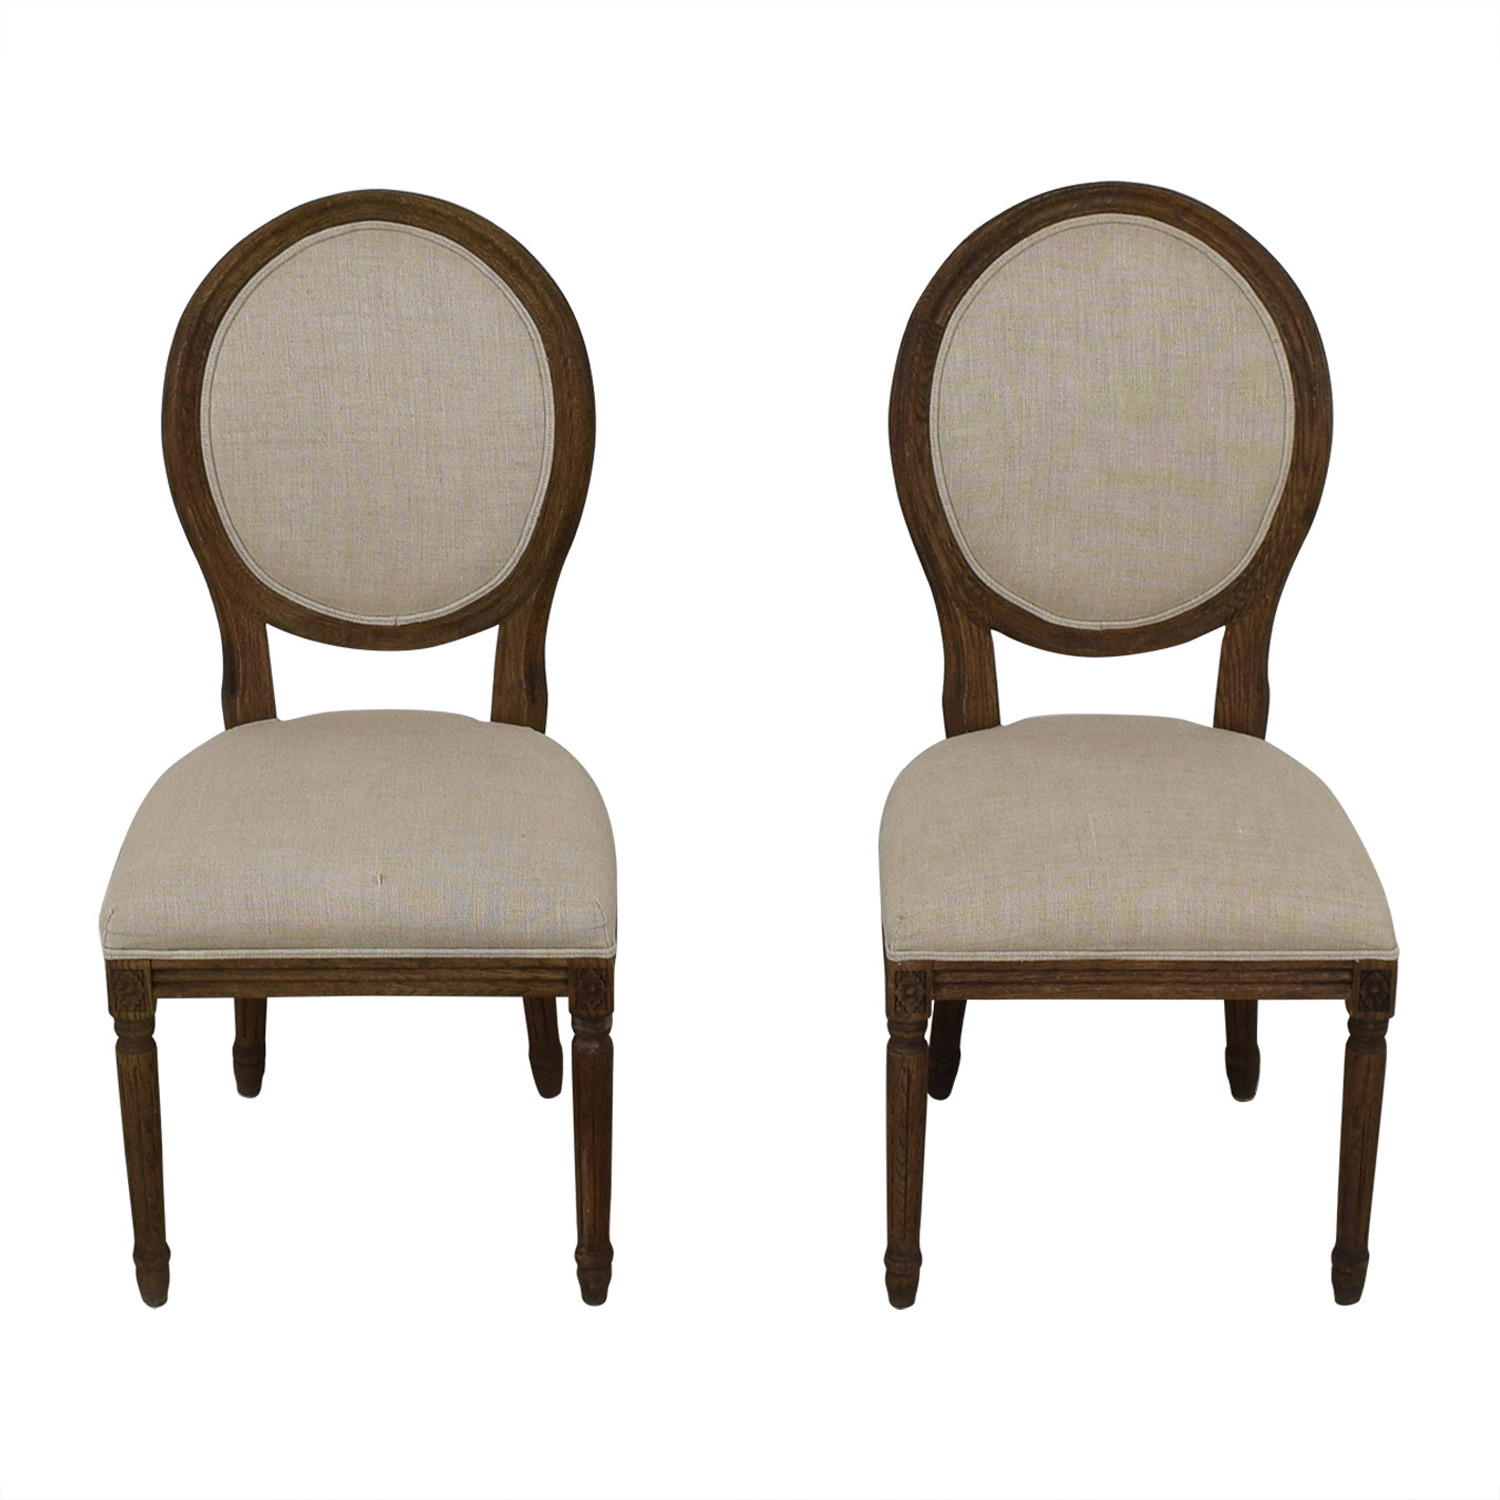 Restoration Hardware Restoration Hardware Vintage French Grey Upholstered Chairs Chairs